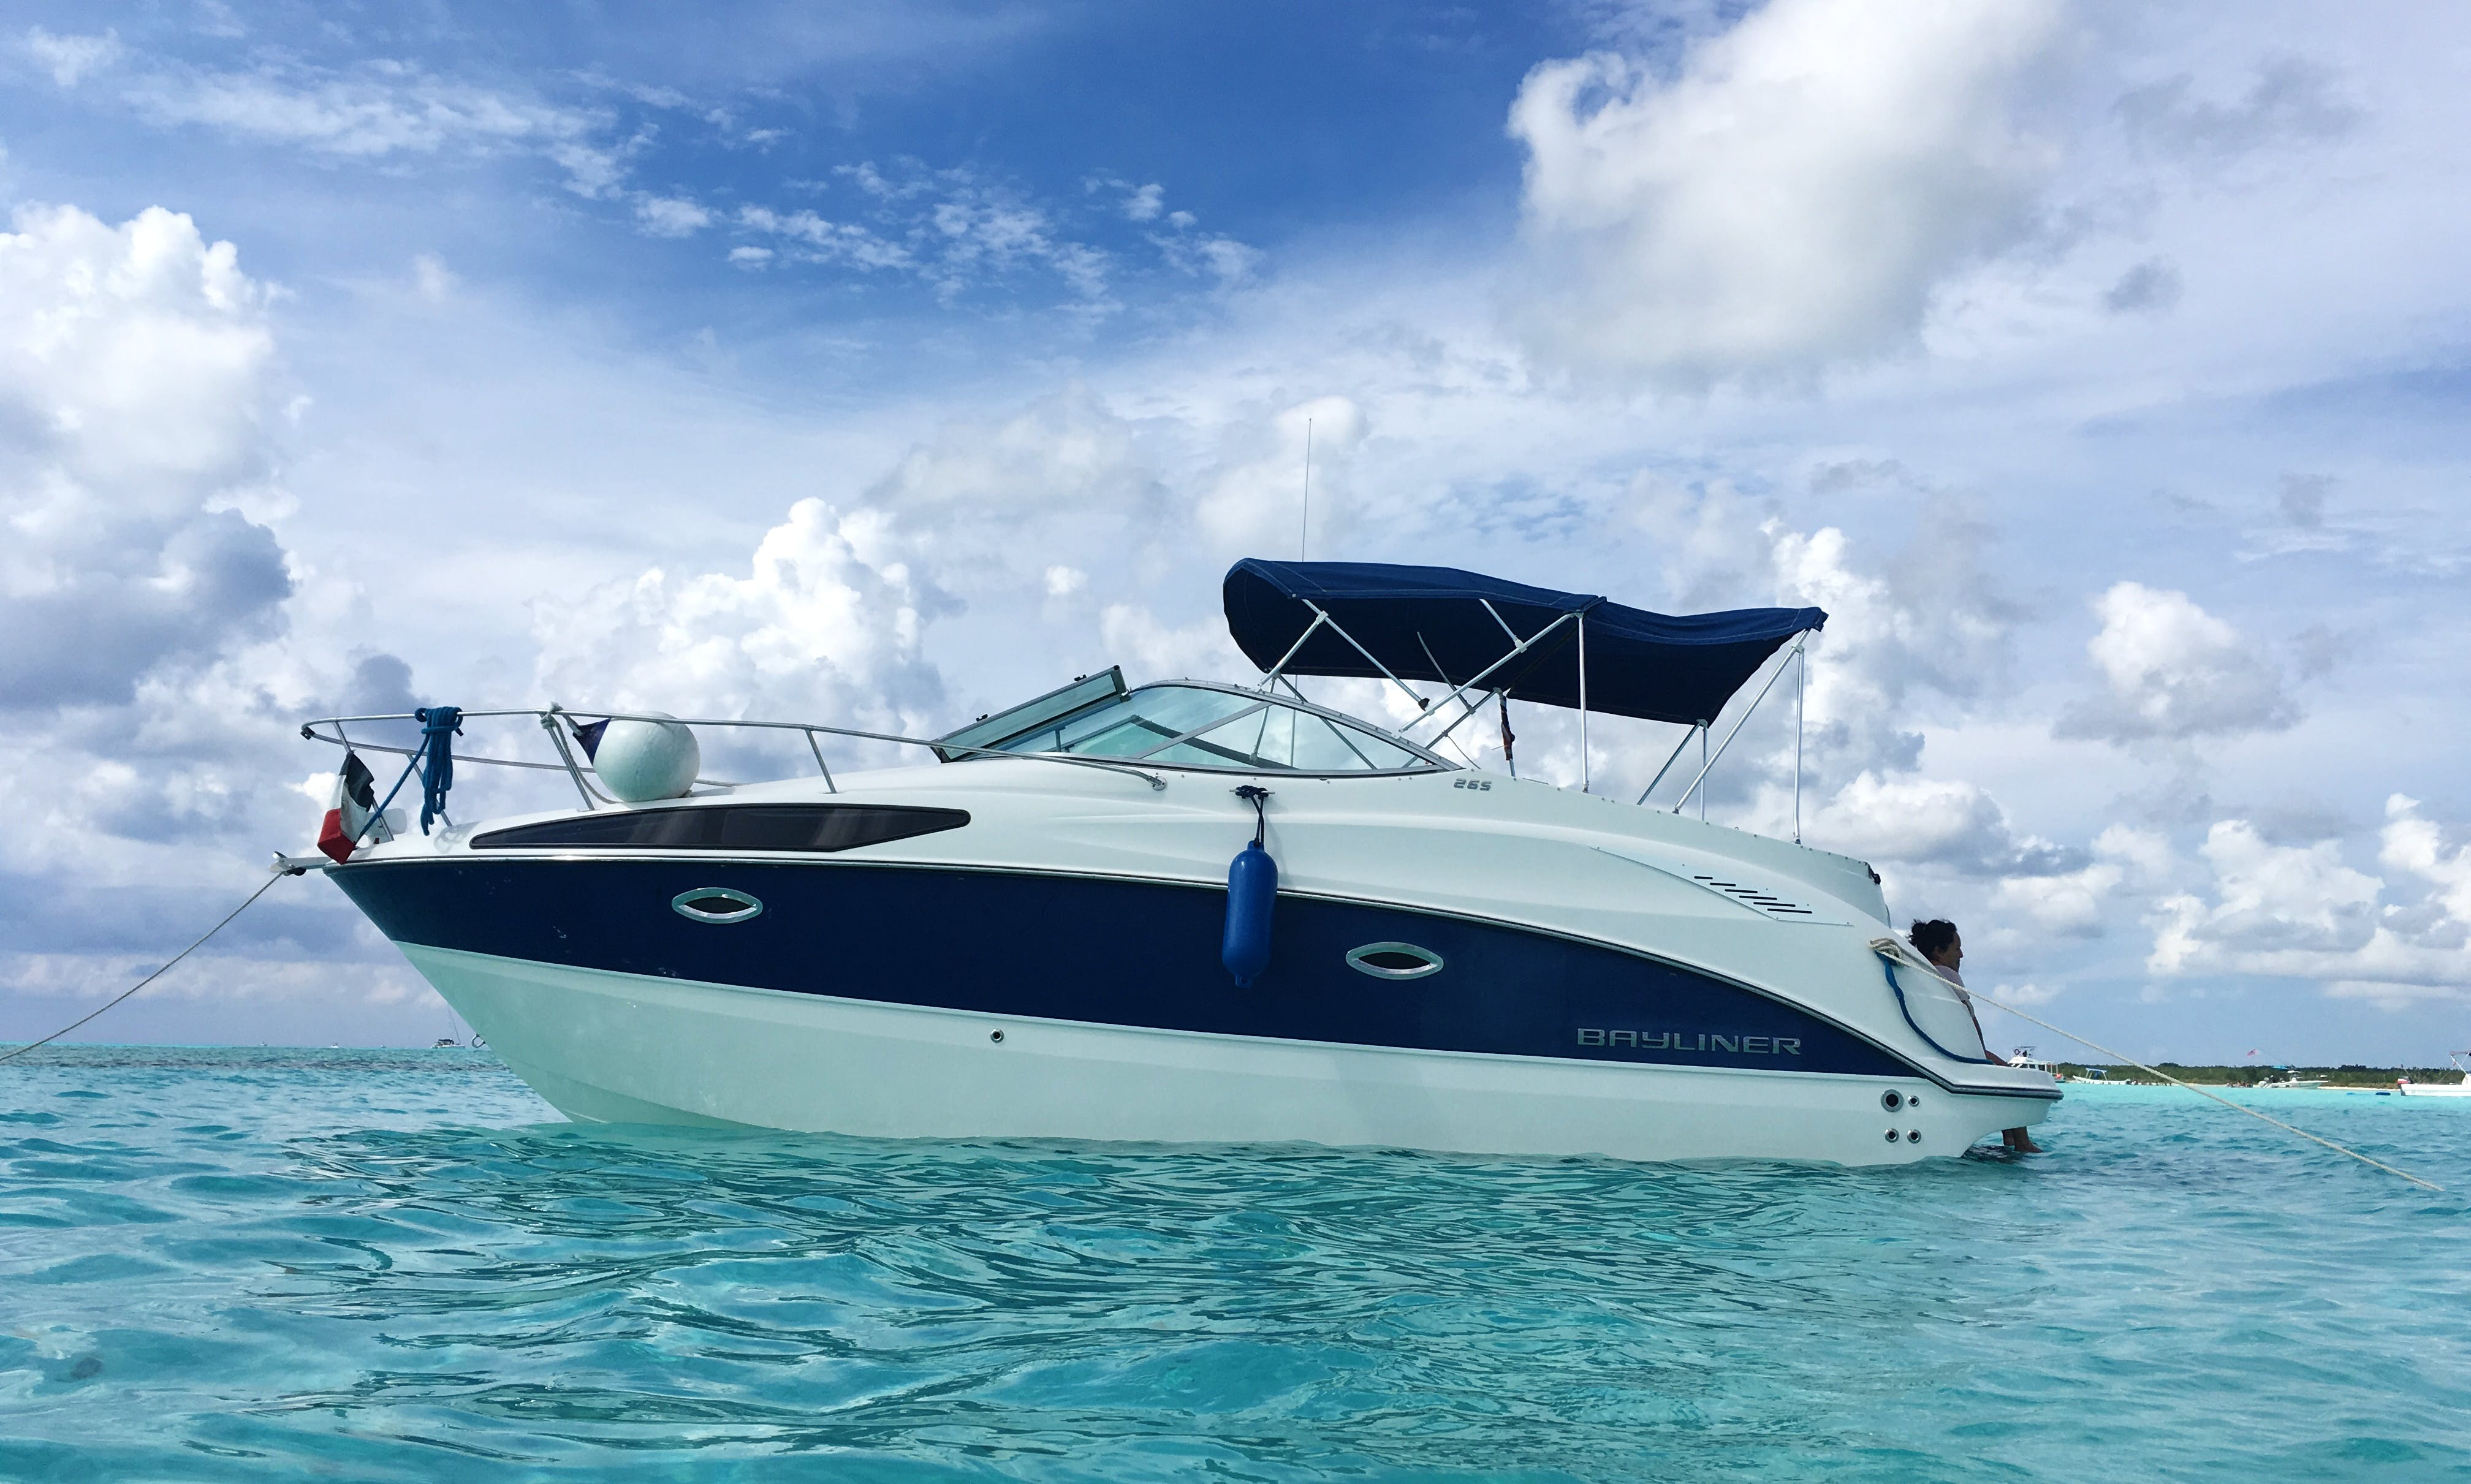 29' Bayliner Cuddy Cabin In Cozumel, Mexico.